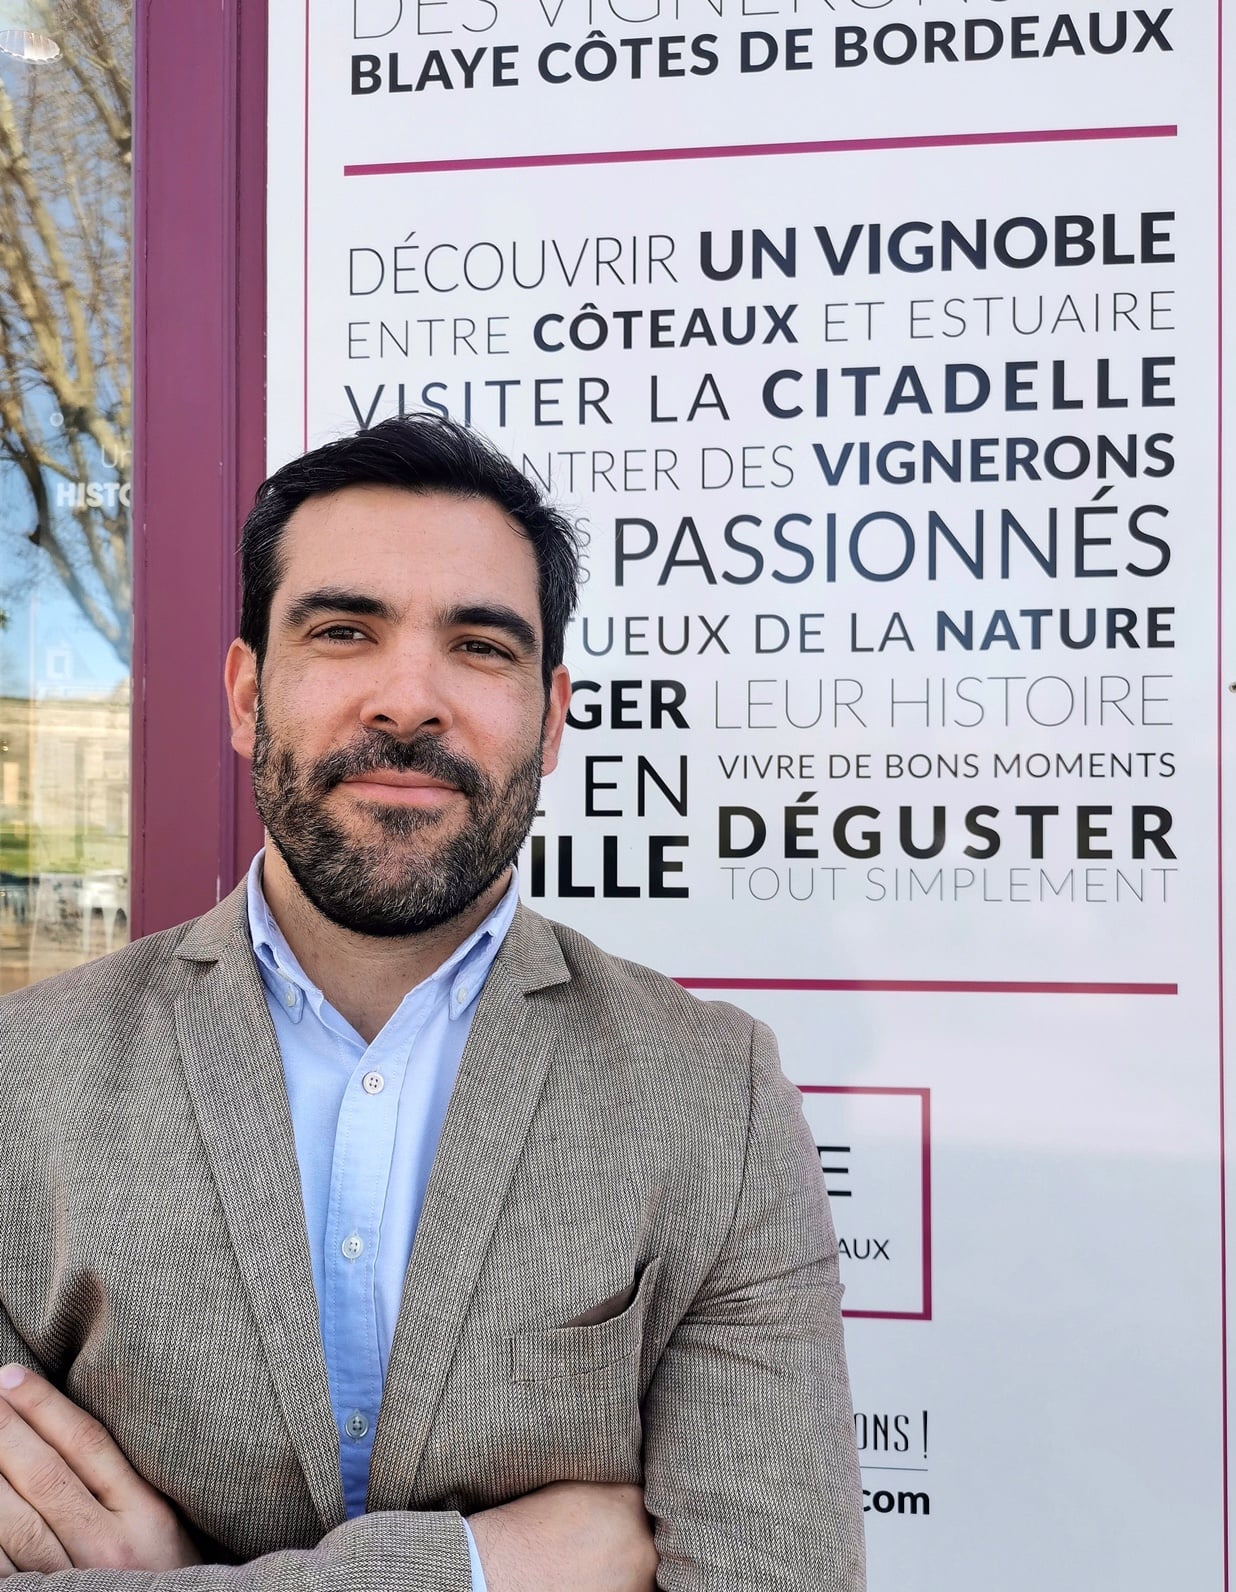 A new director for the Blaye Côtes de Bordeaux appellation